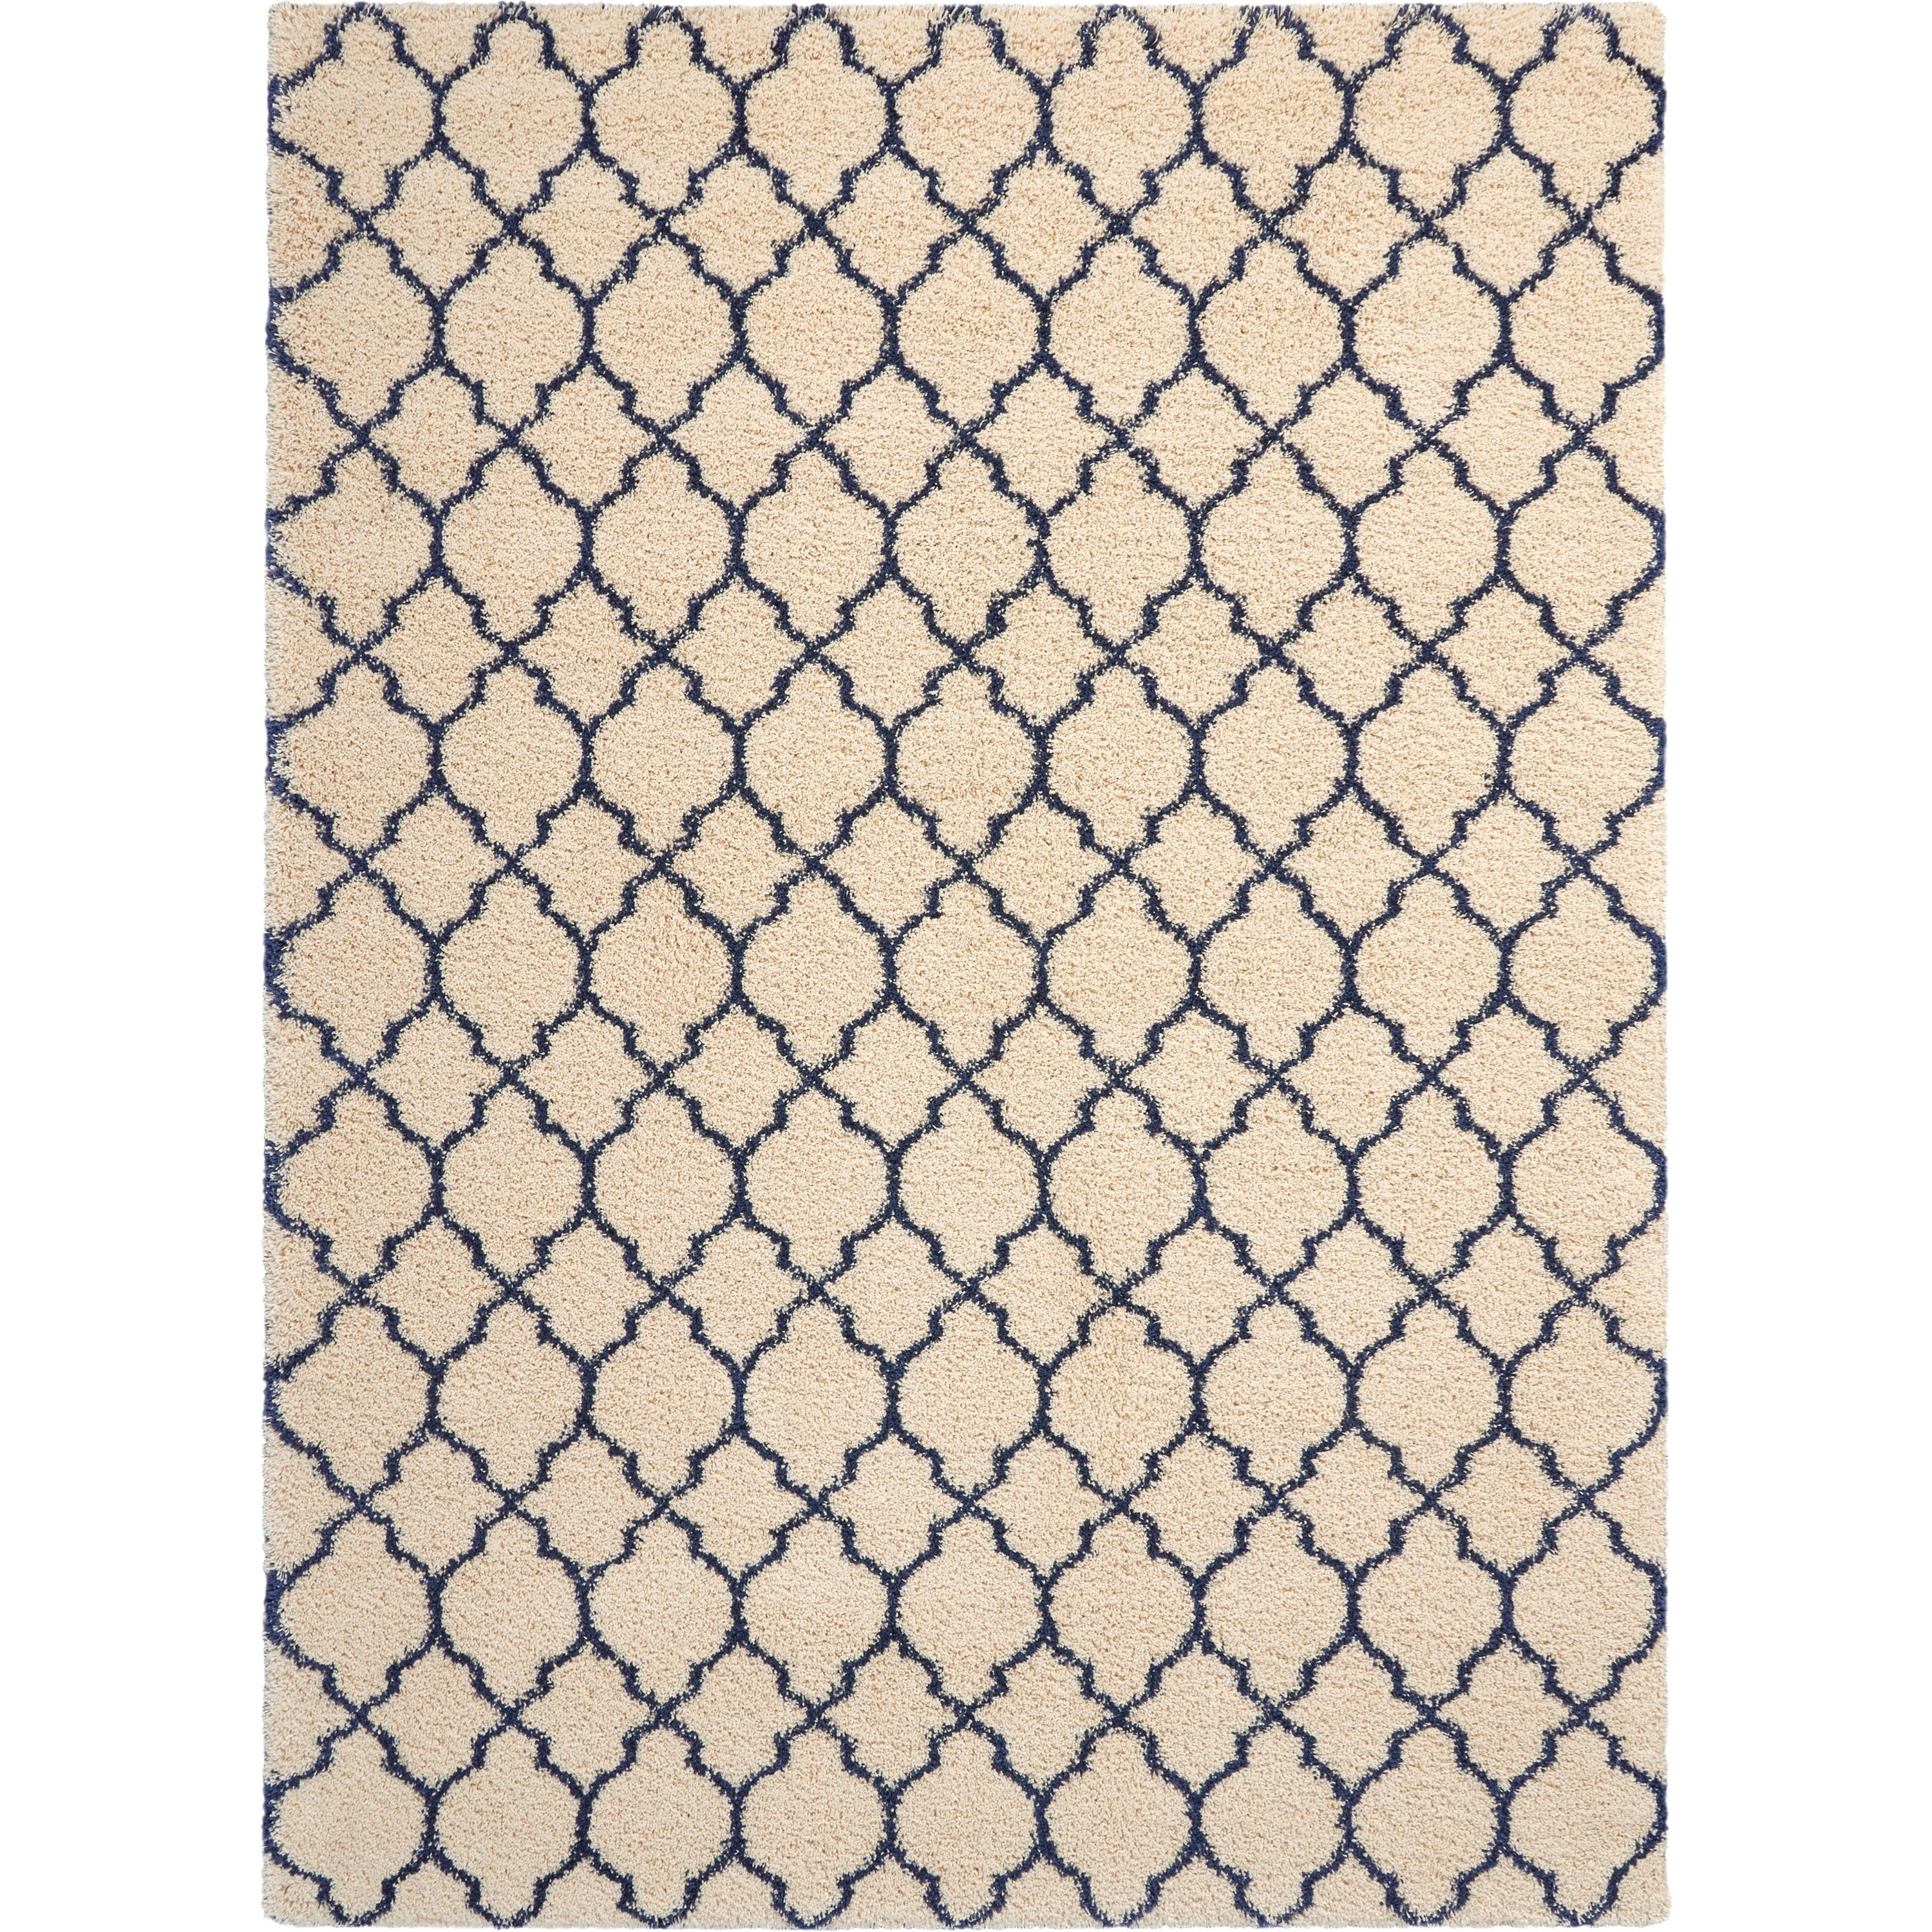 Amore Amore AMOR2 Blue and Ivory 8'x11'   Rug by Nourison at Home Collections Furniture